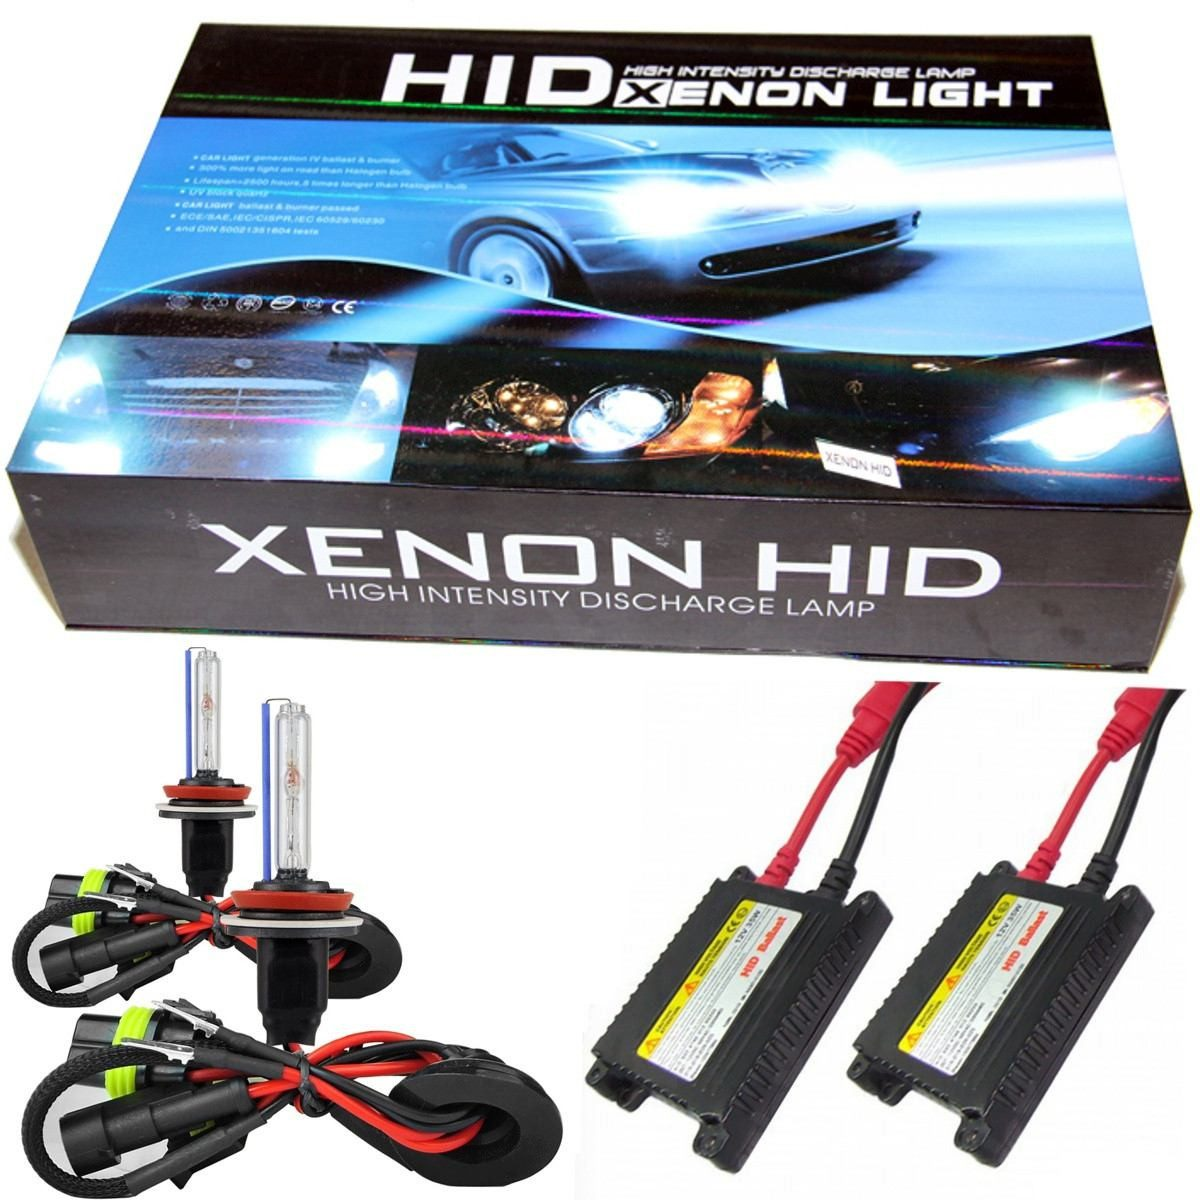 kit xenon hid 4300k 6000k 8000k 10000k h1 h3 h4 h7 h11 hb4. Black Bedroom Furniture Sets. Home Design Ideas